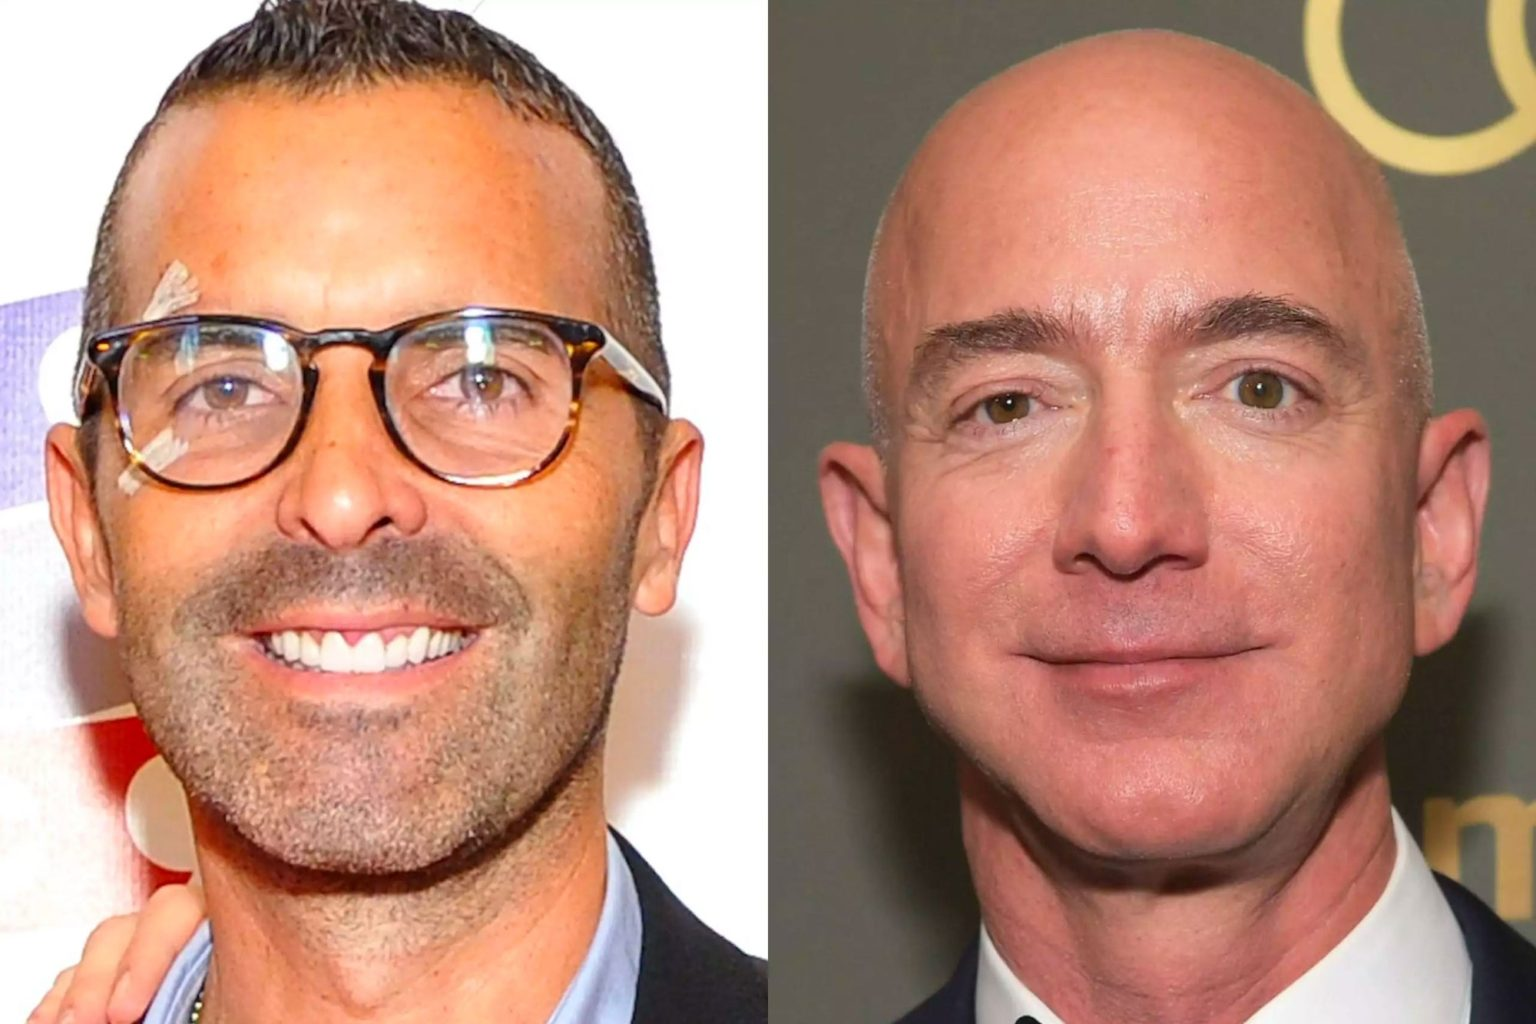 Jeff Bezos sued by girlfriends brother for defamation